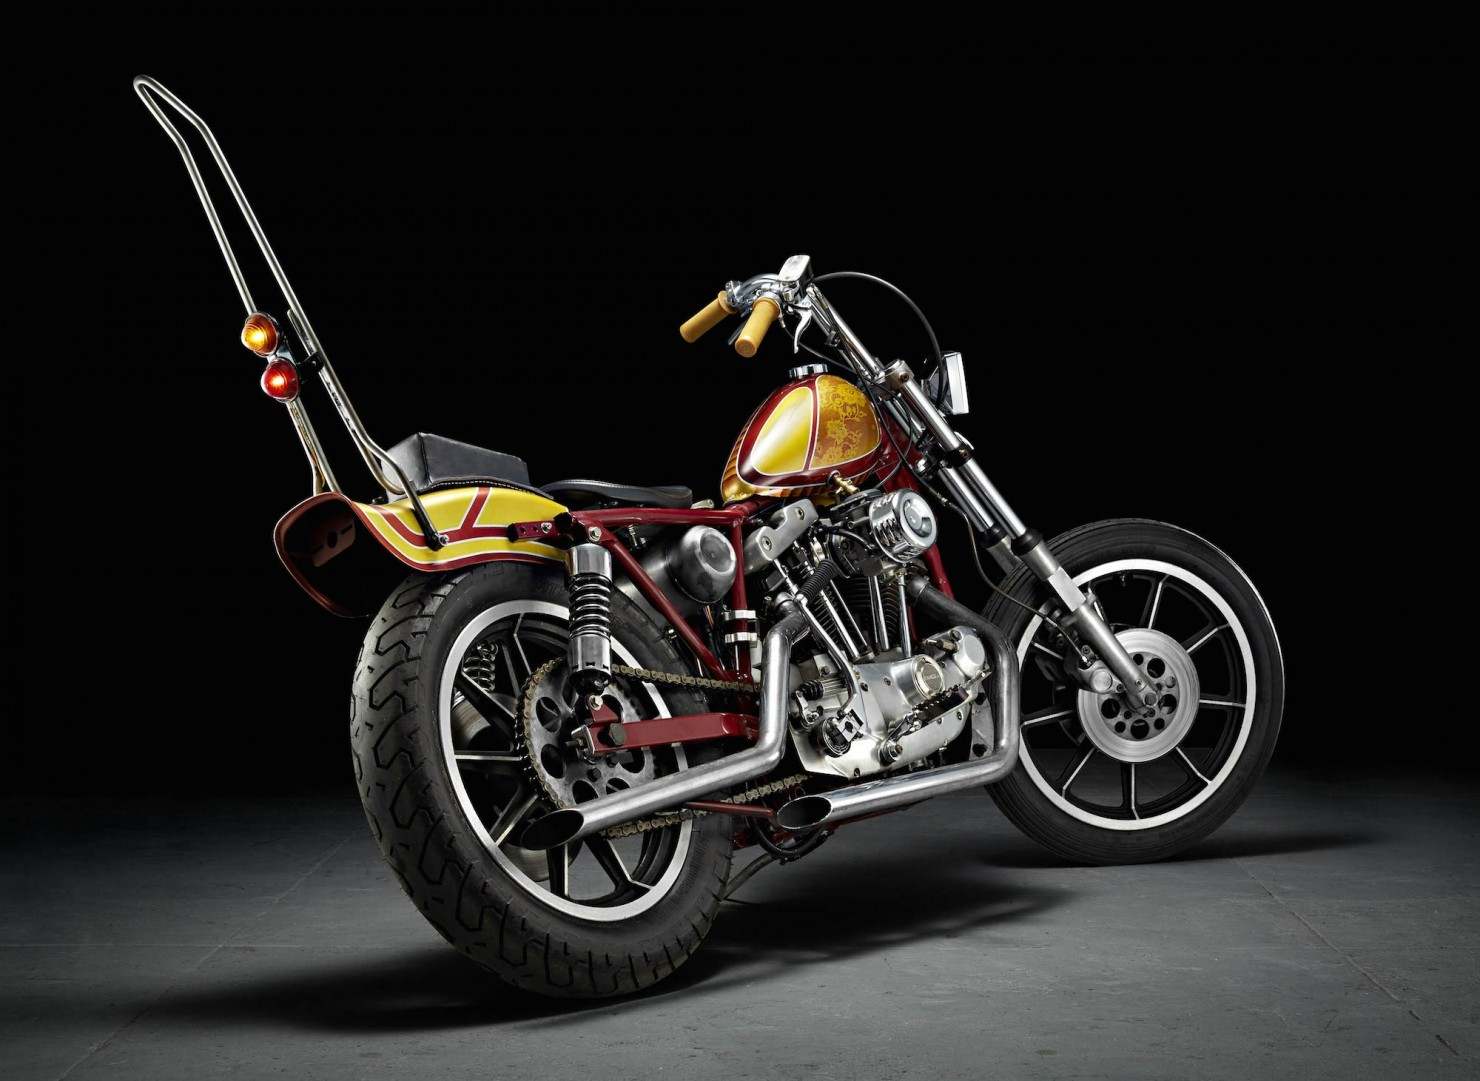 Harley-Davidson Chopper Motorcycle